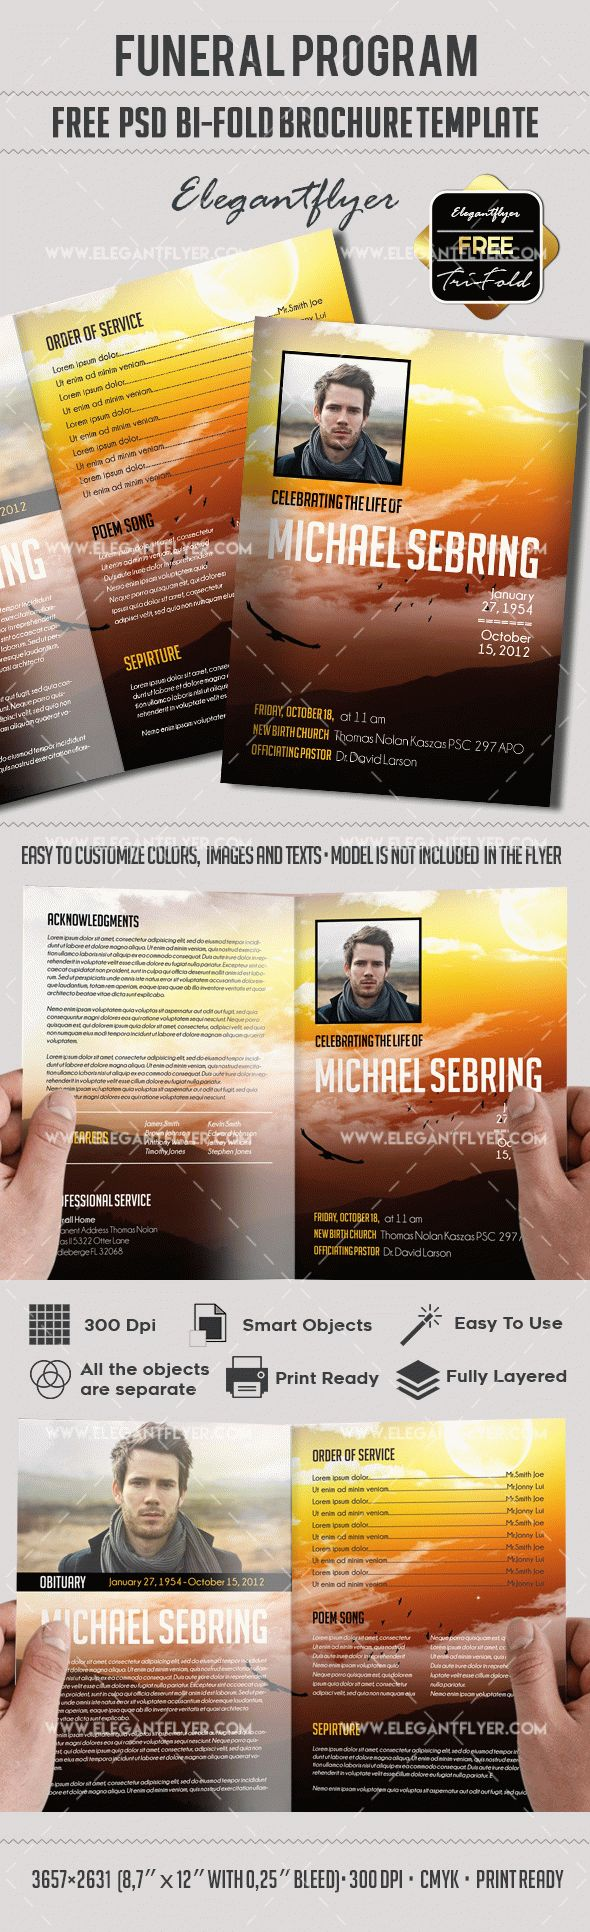 Free editable funeral program brochure by elegantflyer for Program brochure templates